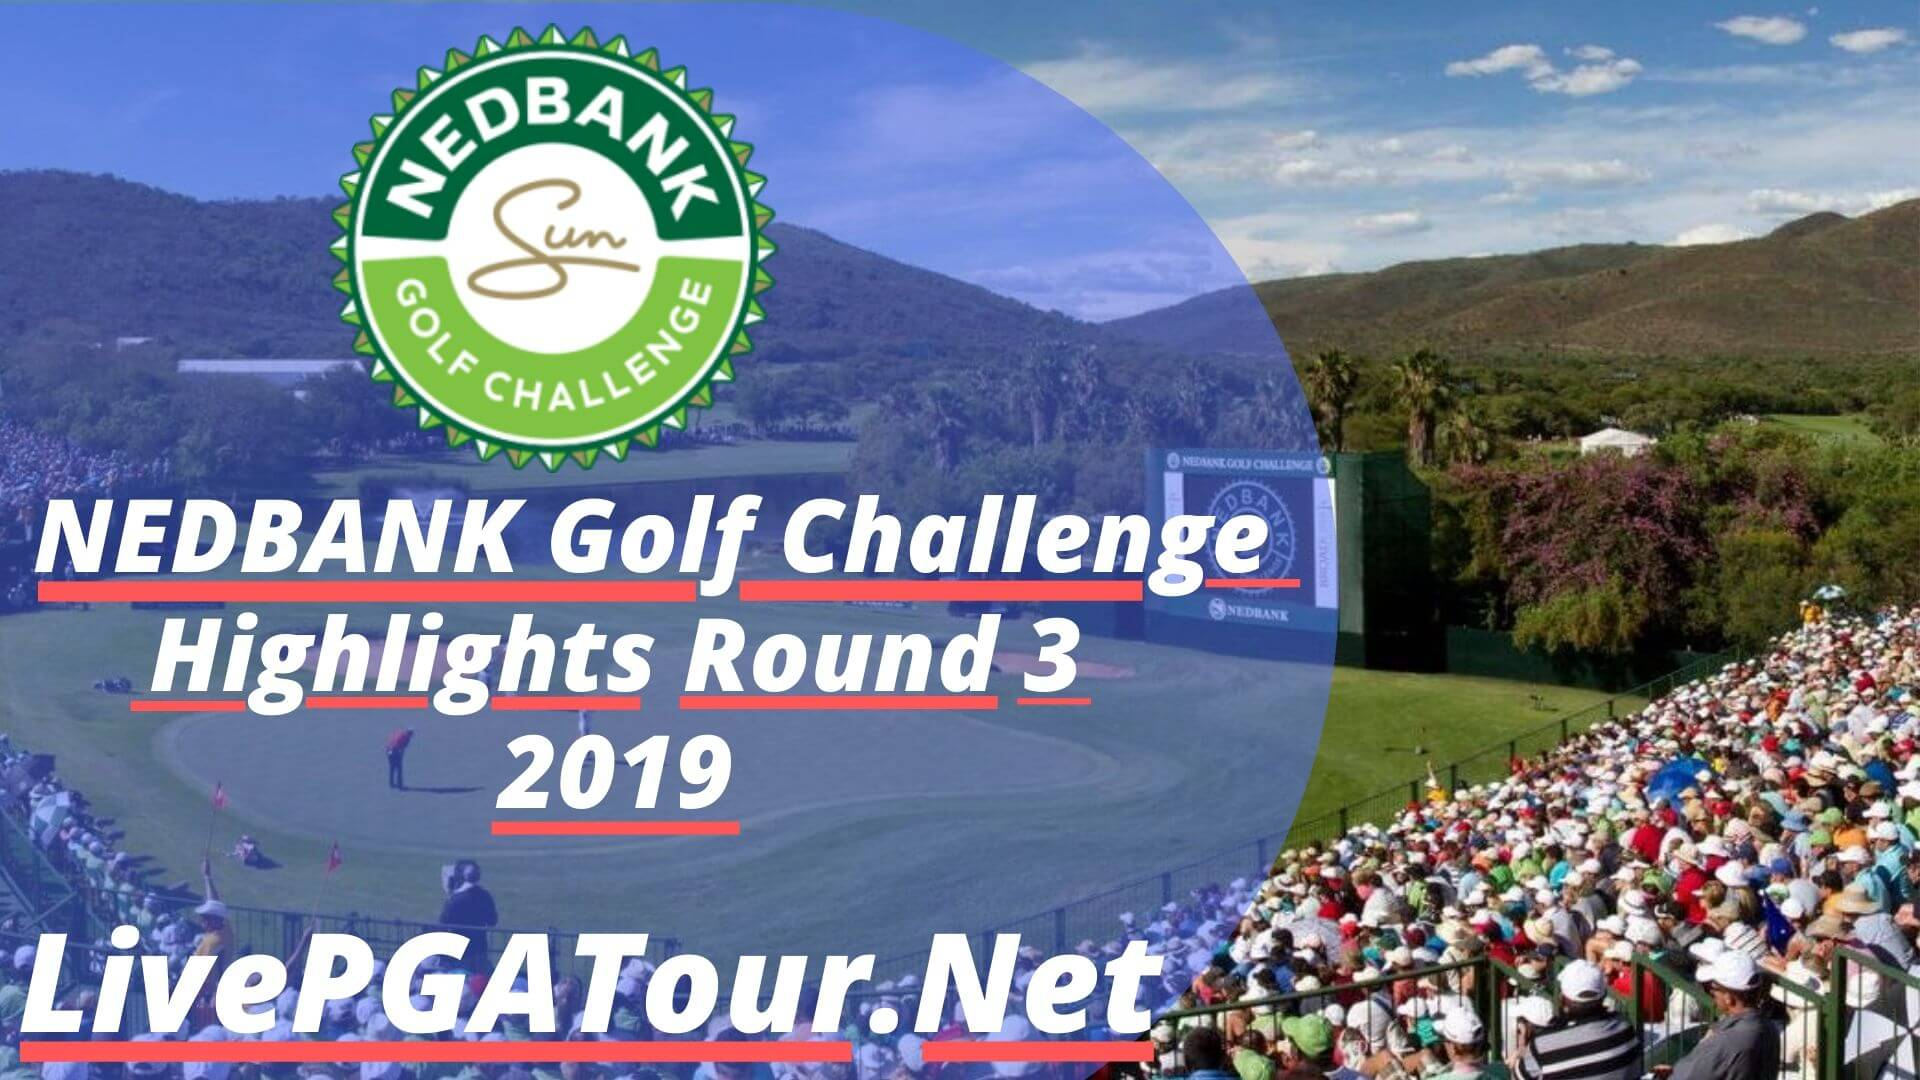 Nedbank Golf Challenge Highlghts 2019 Round 3